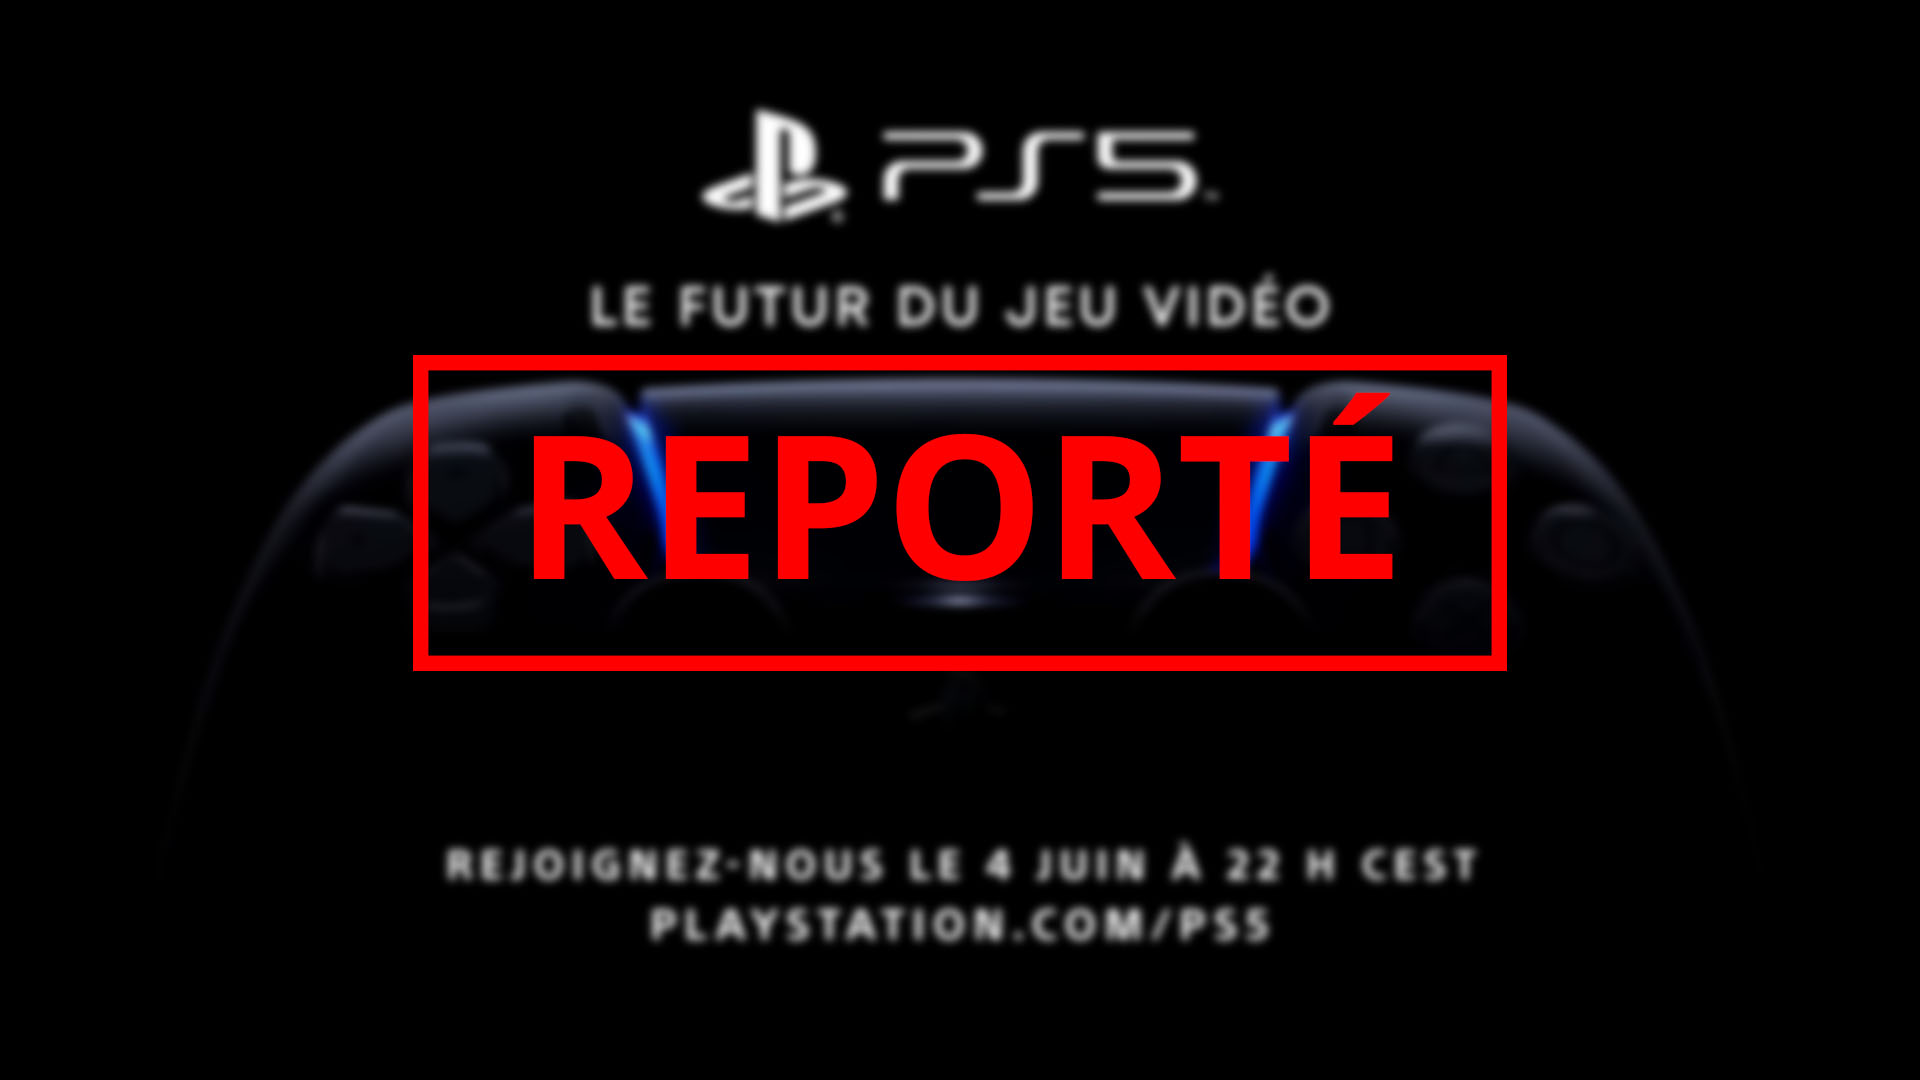 annonce event ps5